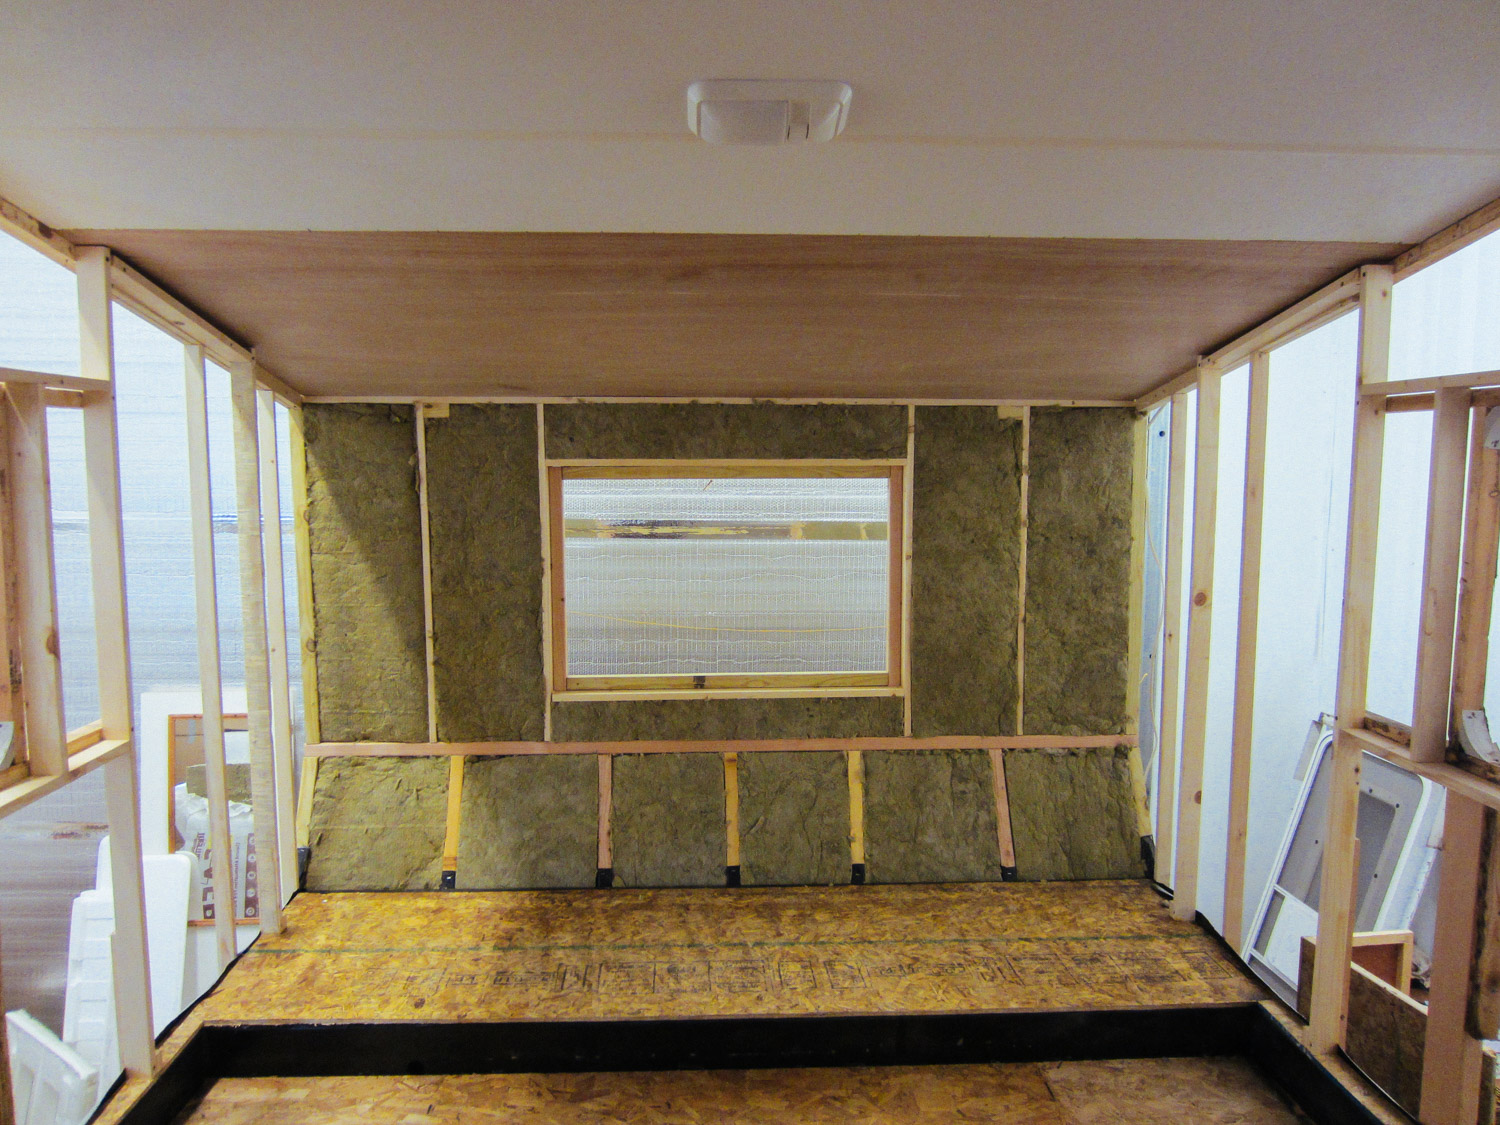 Mineral wool insulation was added to the bedroom walls.